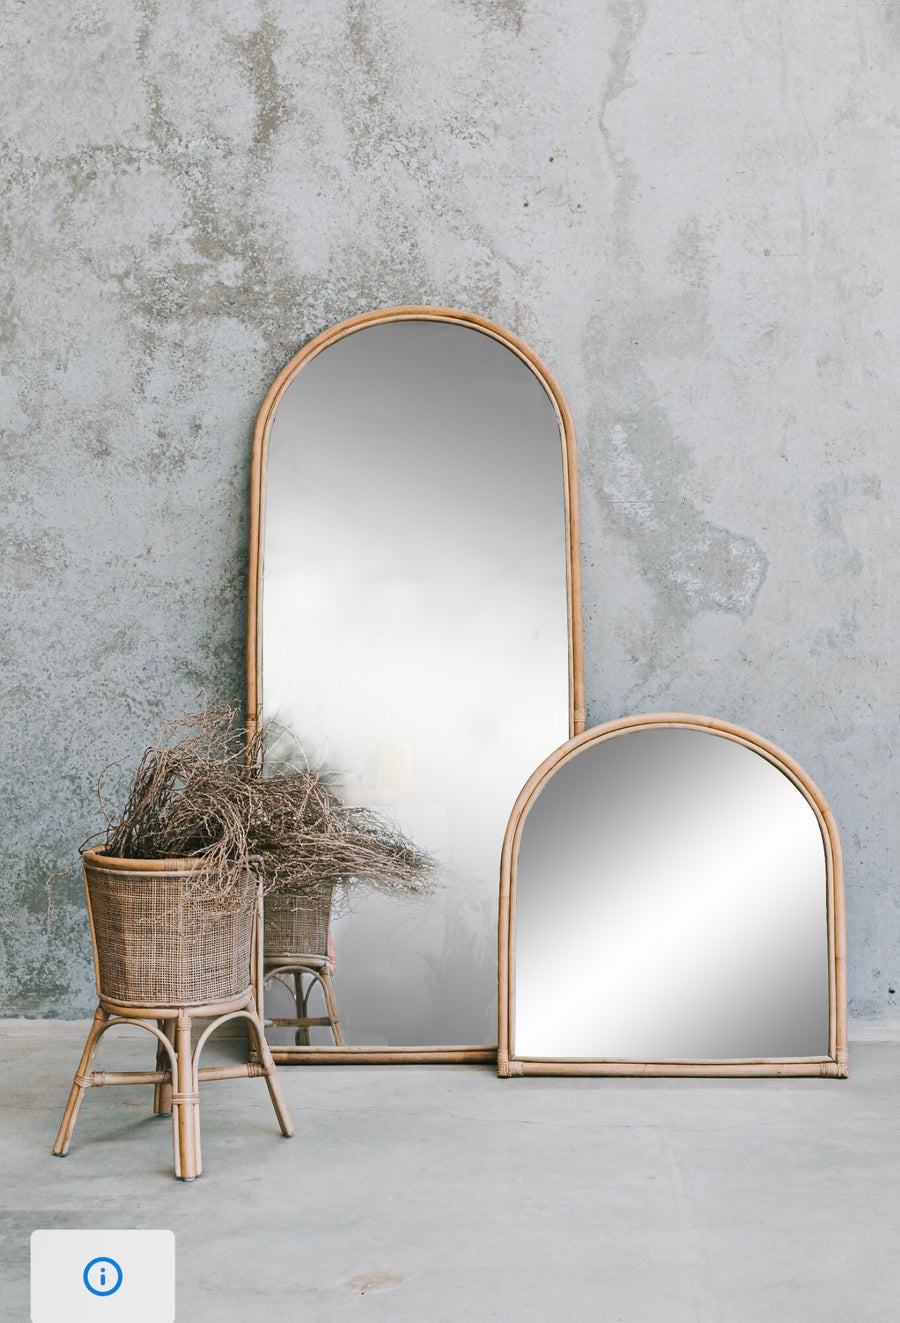 Arch Mirror Pre Order Dec Pick Up Only Byron Bay Hanging Chairs